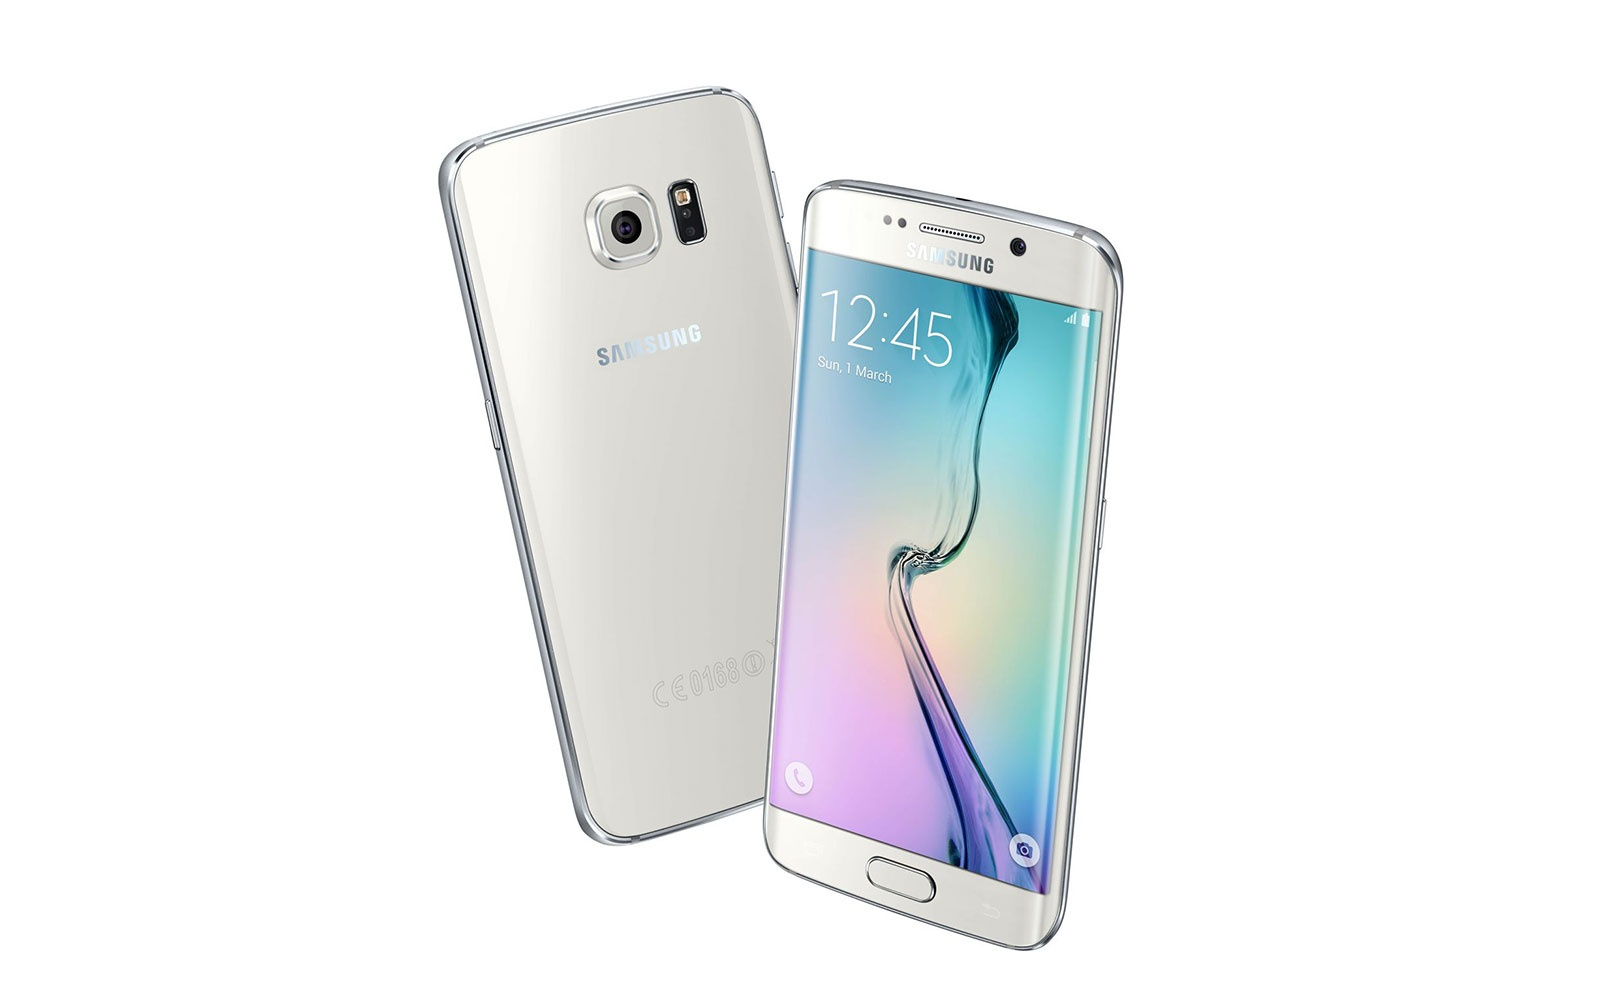 Samsung Galaxy S6 Edge mobile cellular phone